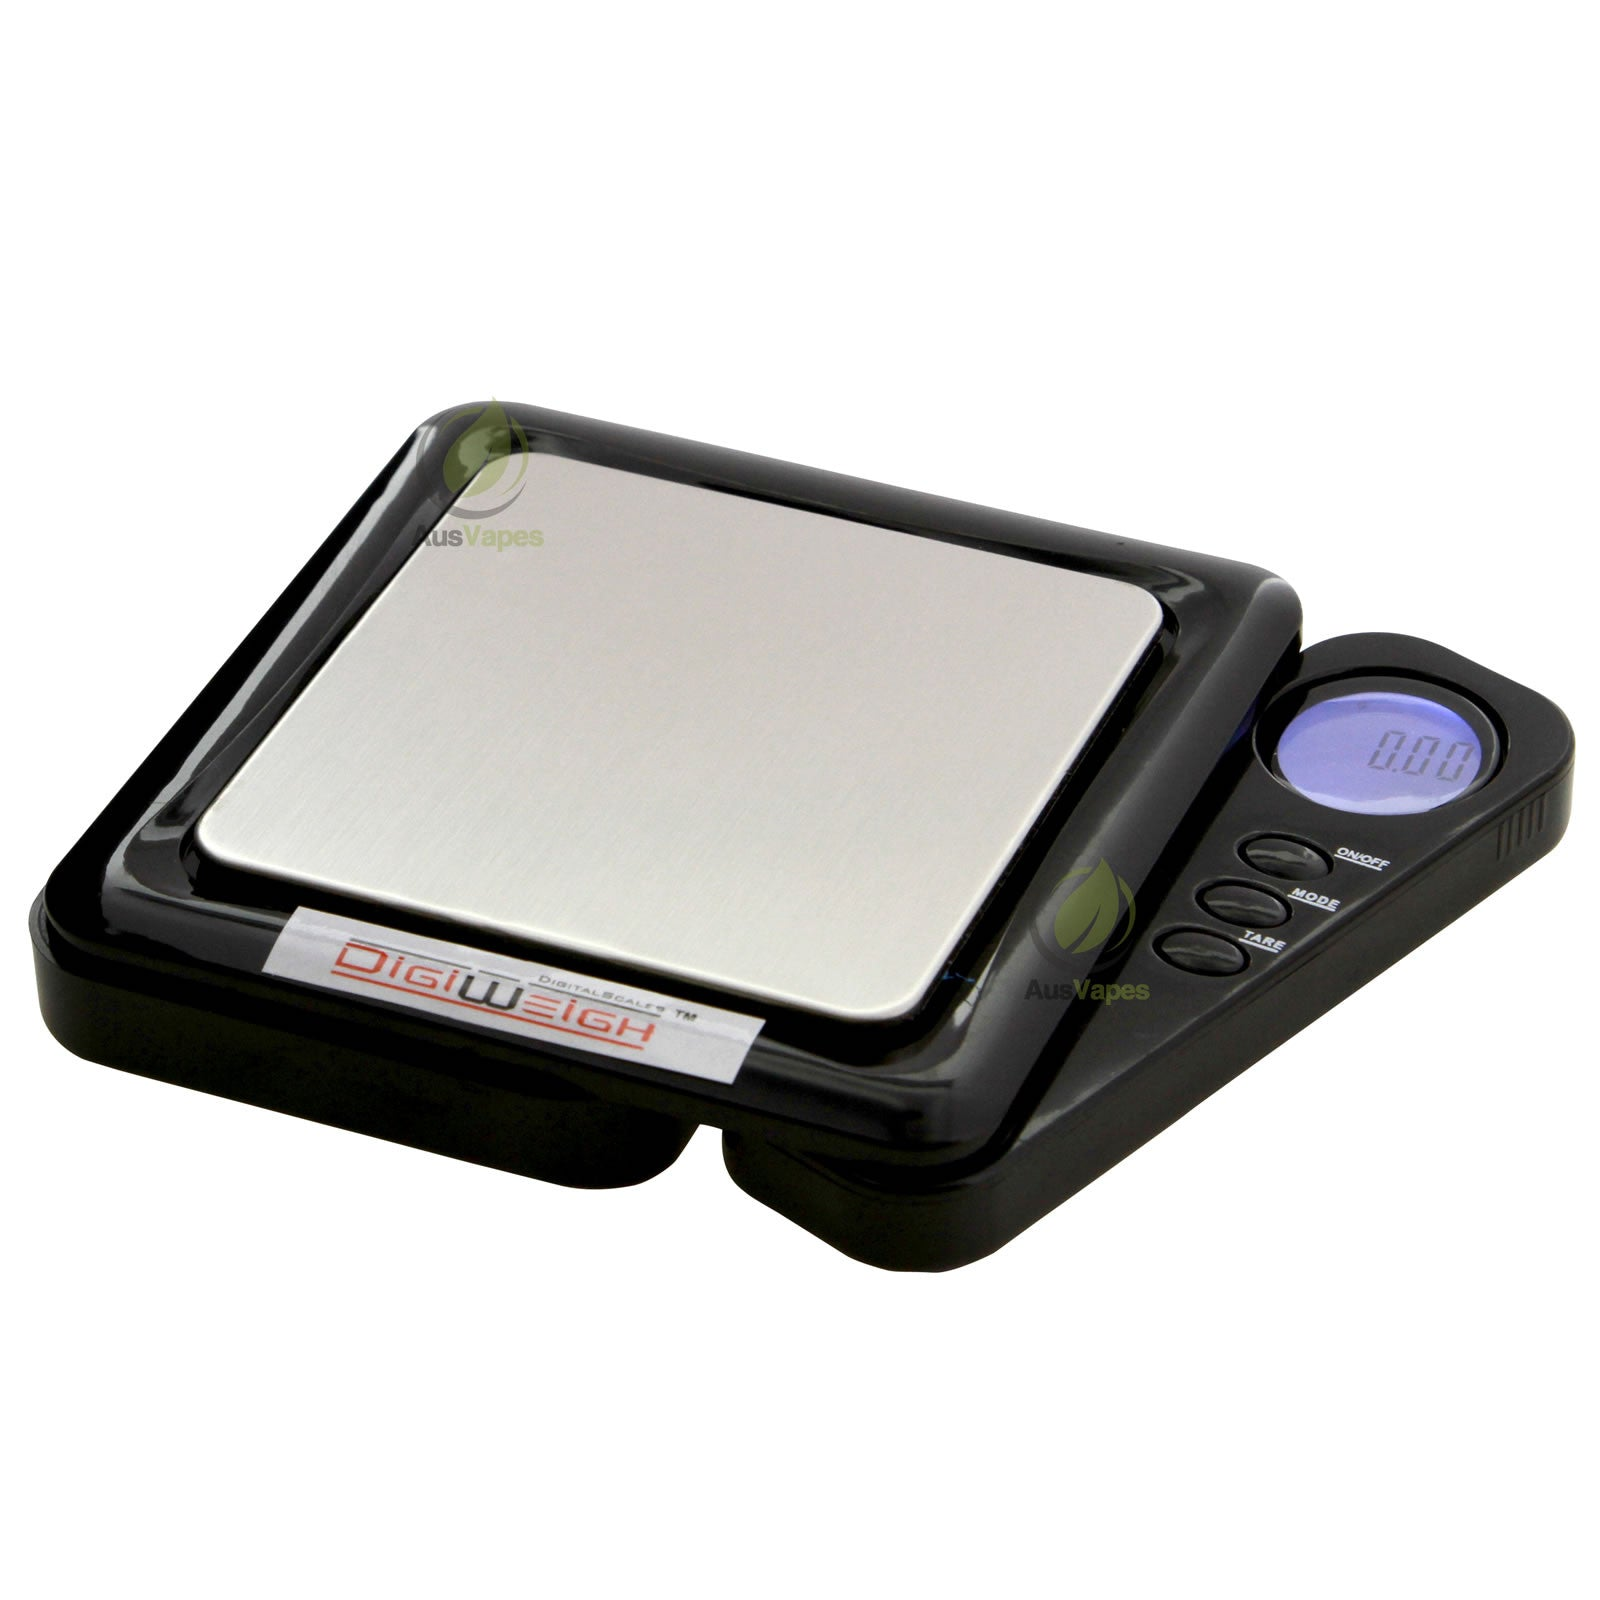 DISCONTINUED Digiweigh Z Series Digital Pocket Scale 100g x 0.01g